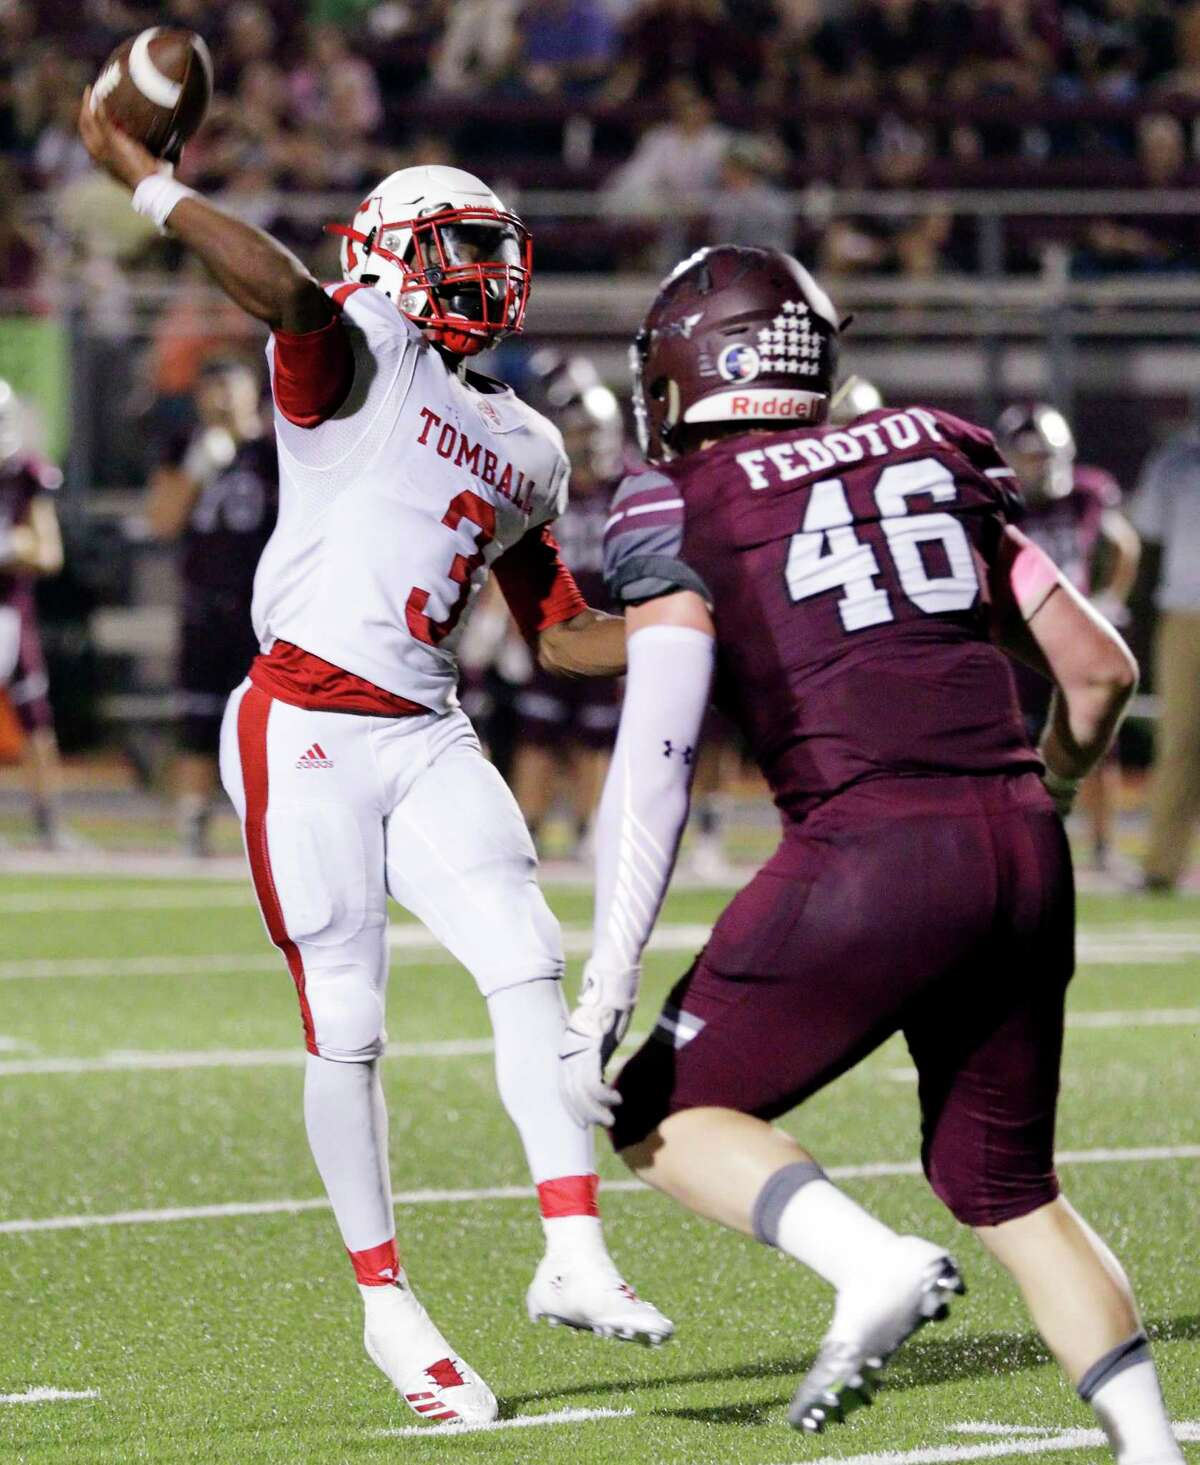 Tomball quarterback Tybo Taylor passes under pressure from Magnolia's Michael Fedotov in the second half of their game at Bulldog Stadium in Magnolia, TX, Oct. 5, 2017. (Michael Wyke / For the Chronicle)